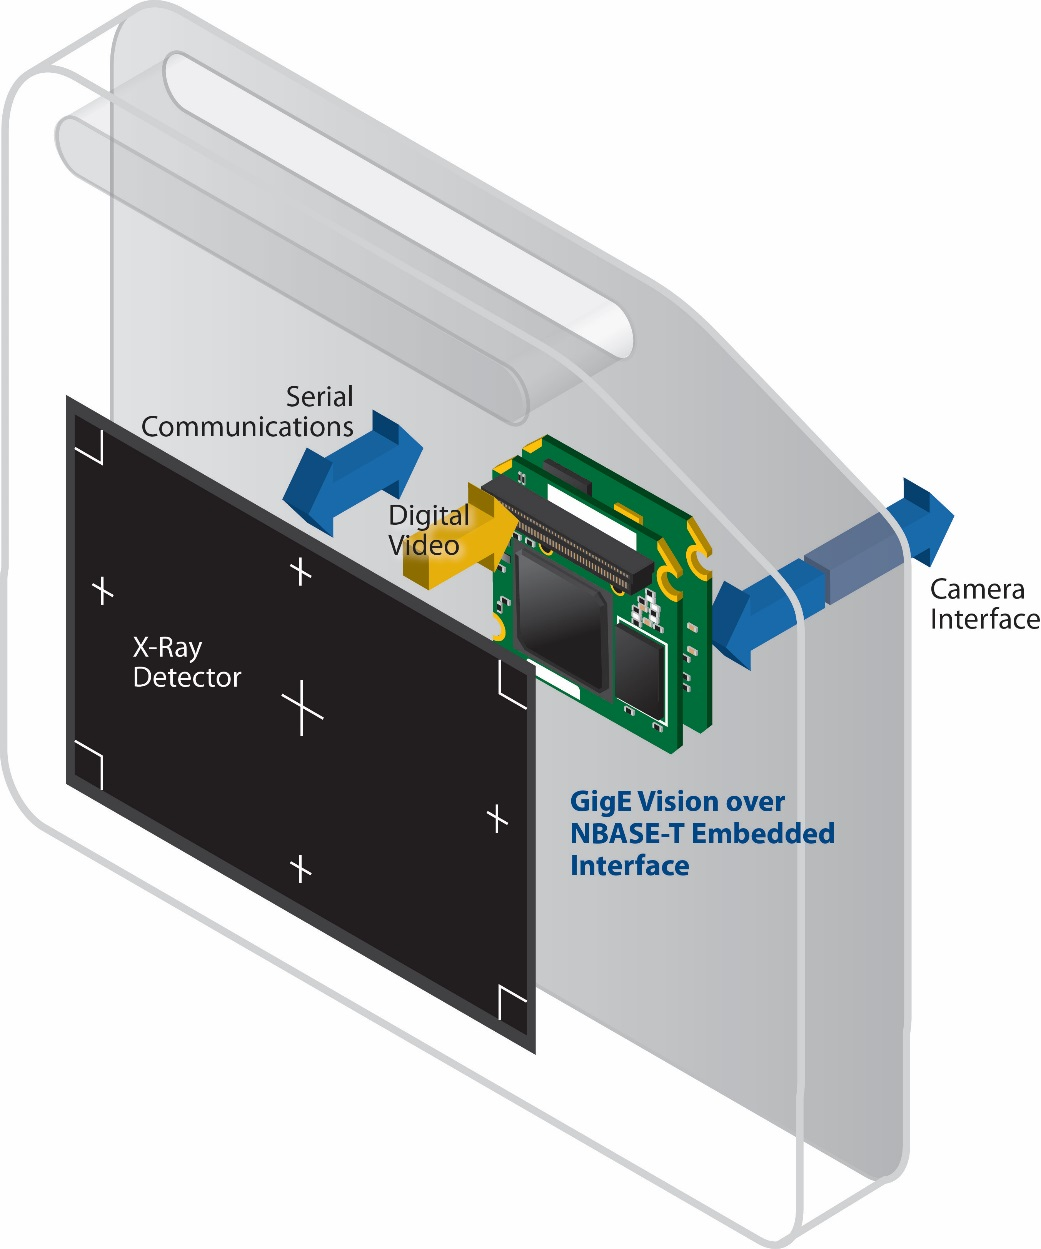 Figure 2: Embedded hardware solutions allow designers to easily integrate GigE Vision over NBASE-T connectivity into digital flat panel detectors.